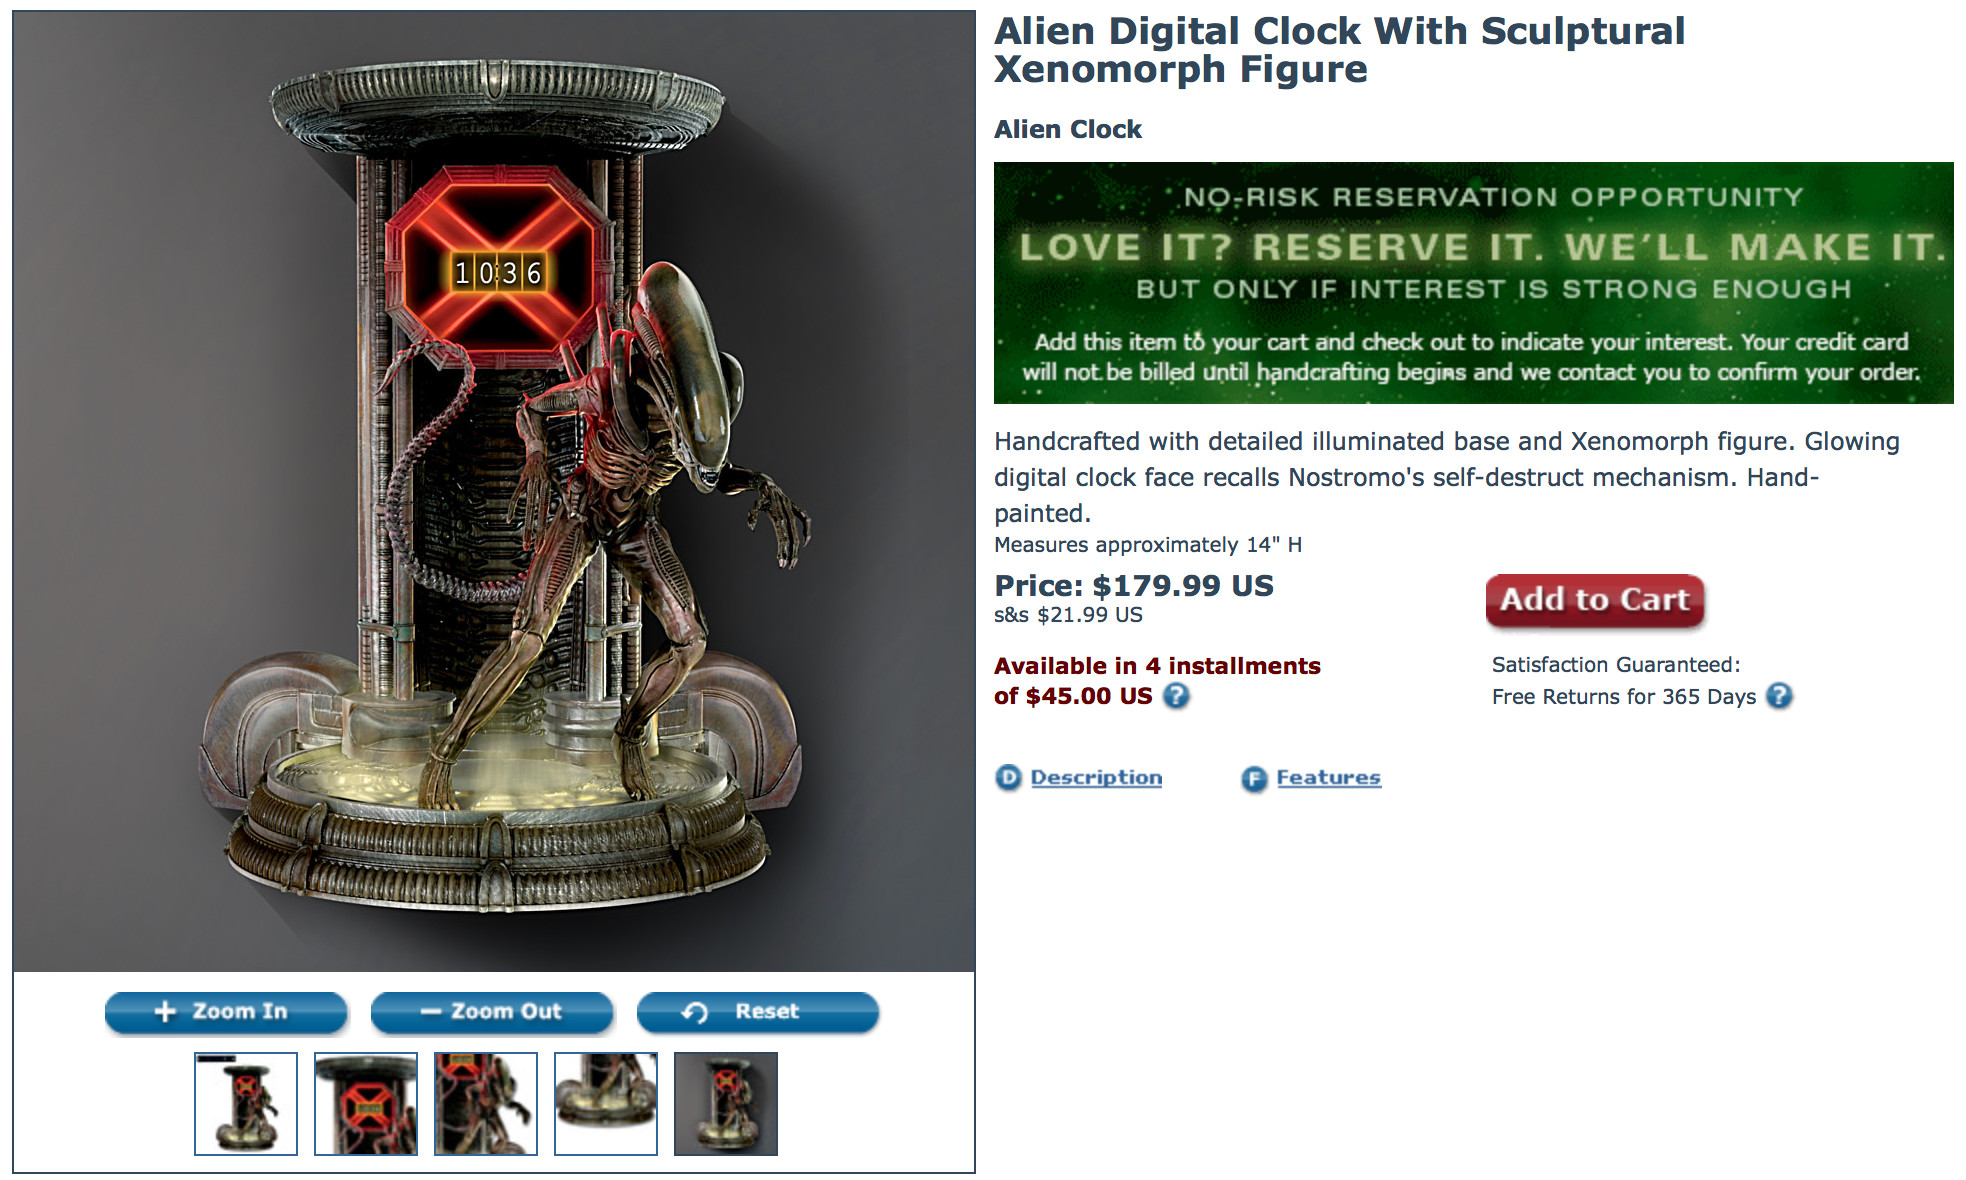 Product Page for Final Clock  http://www.bradfordexchange.com/products/126085001_alien-digital-clock-with-xenomorph-figure.html